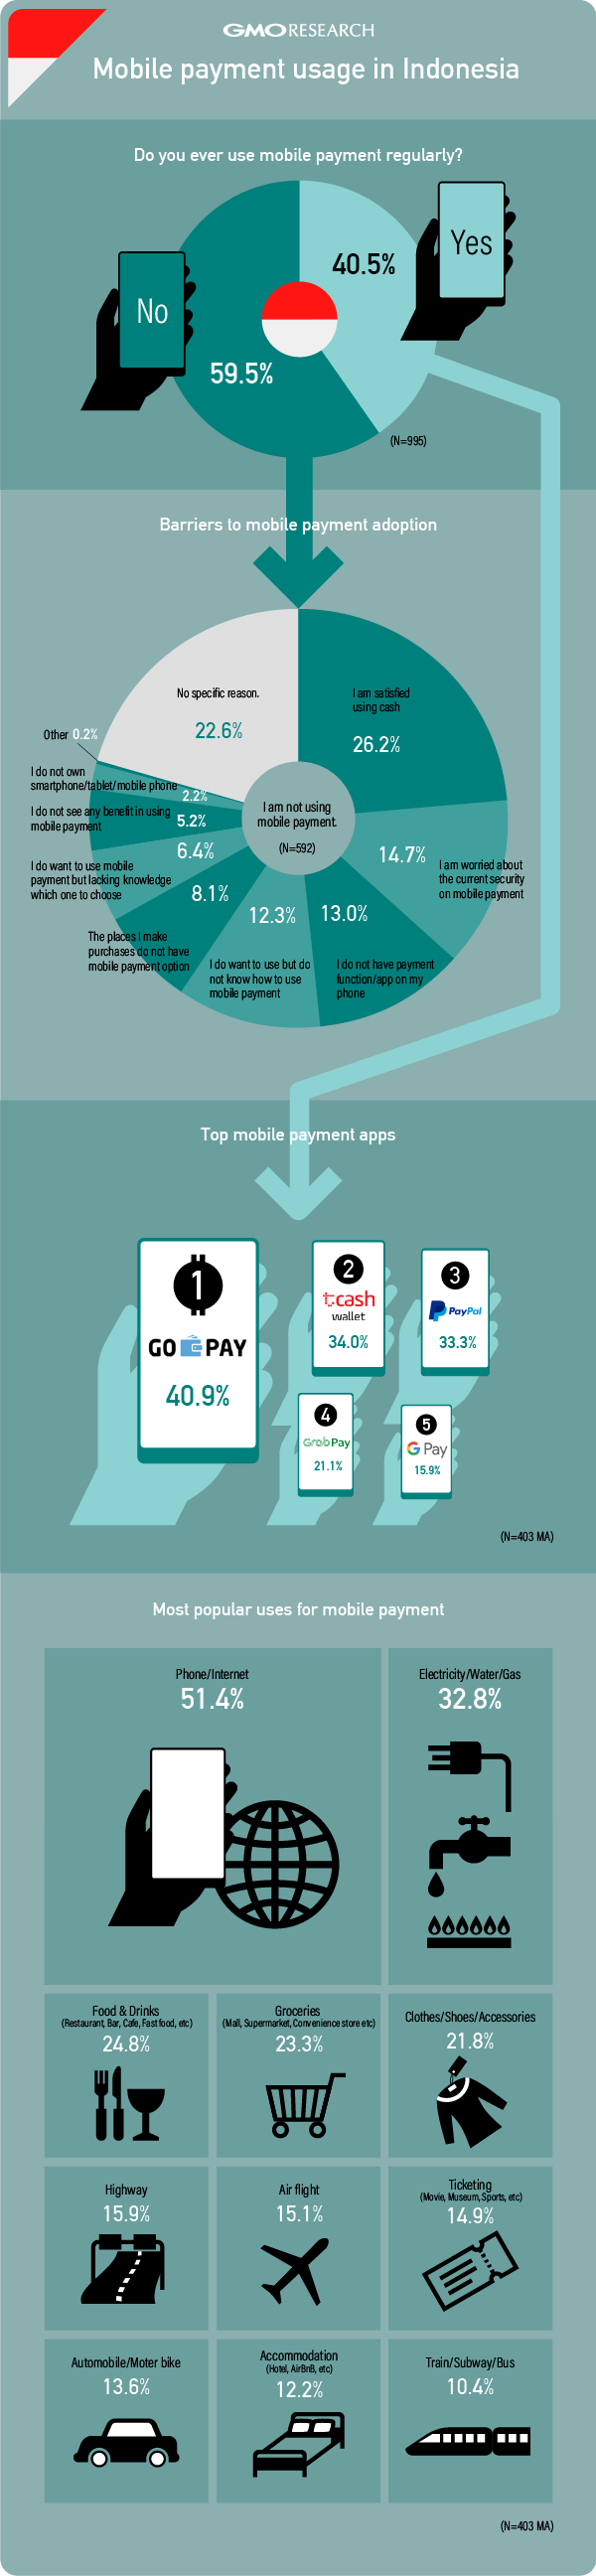 Mobile Payment Usage in Indonesia